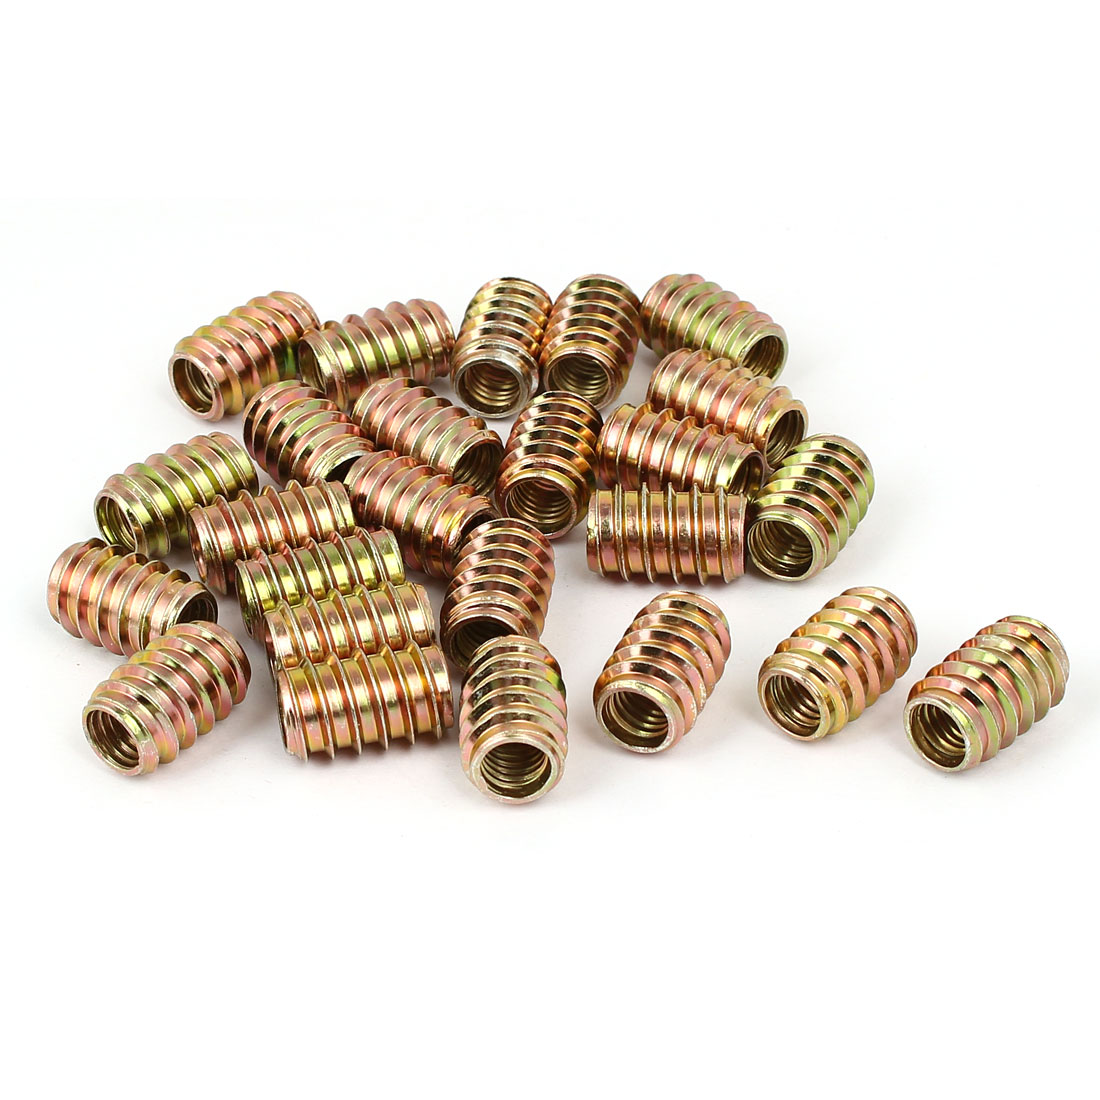 Wood Furniture Insert Fixing Screw E-Nut Bronze Tone M8 x 20mm 25pcs